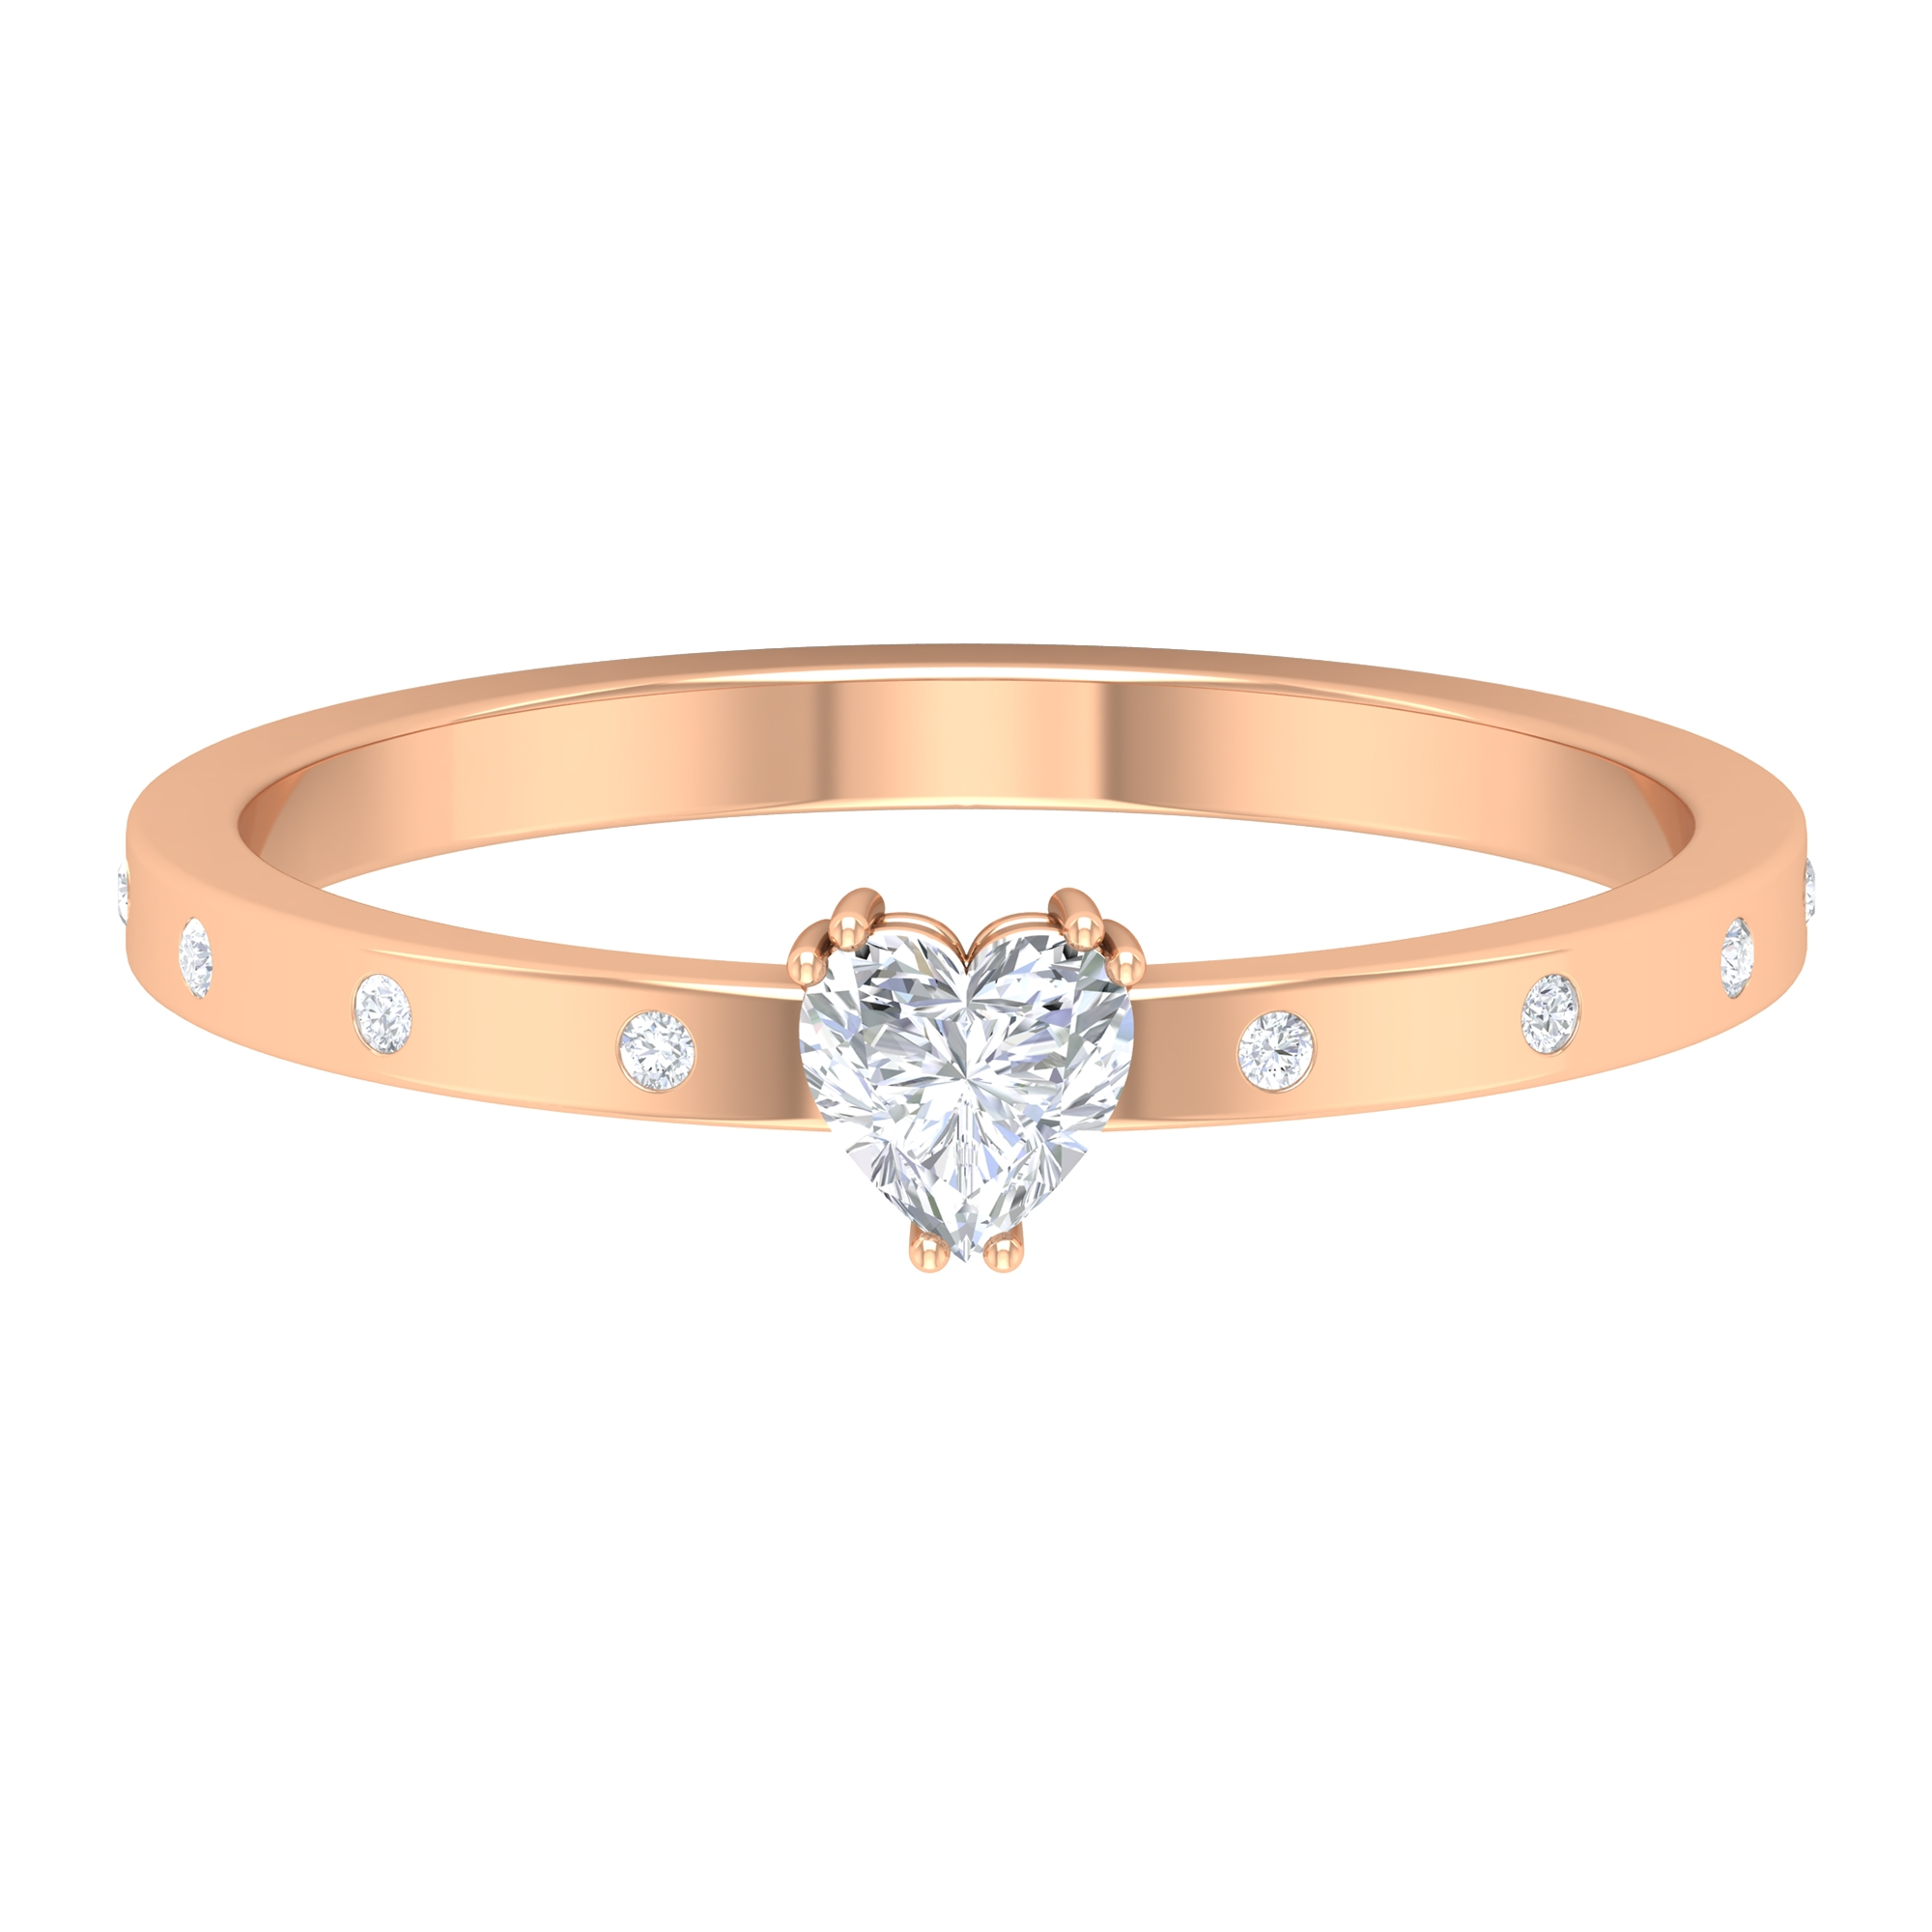 Double Prong Set 4 MM Heart Diamond Solitaire Ring with Sleek Accent